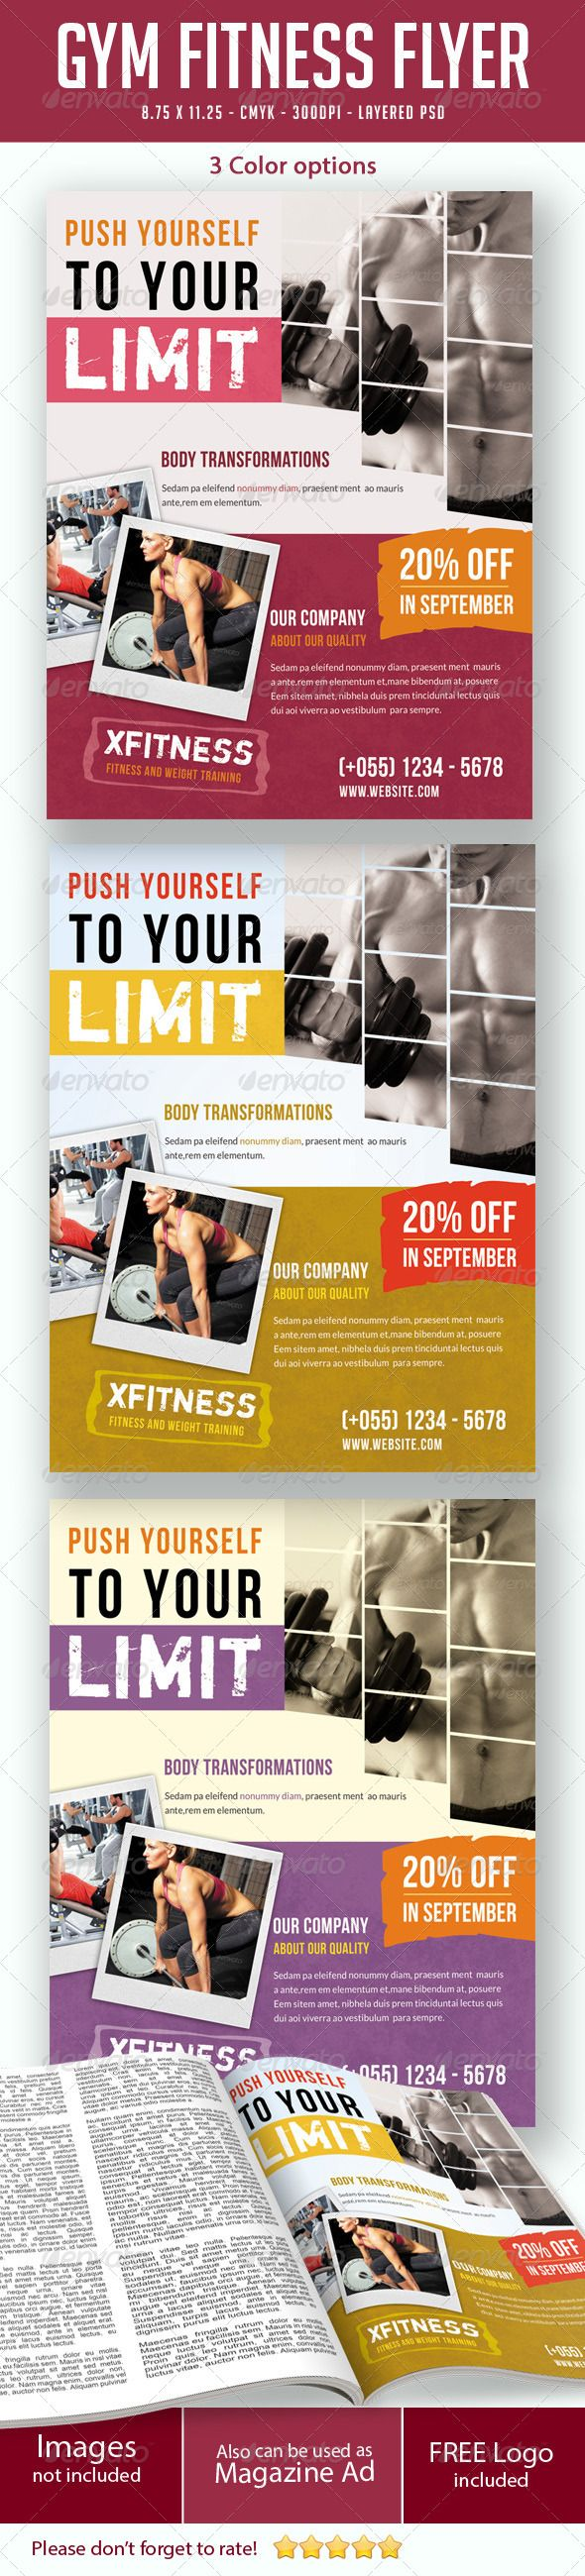 Gym / Fitness Flyer Print Ad  #GraphicRiver        Gym / Fitness Flyer Print Ad  This flyer can be used in any business like gym,fitness,sports,exercise etc. Check the Screenshots for a better preview!    CMYK Color profile  8.75×11.25 including 0.25 bleed  300 DPI  Easy to Edit  Logo Included  Organized layers  Ready to print  Free Fonts  3 Colors Schemes